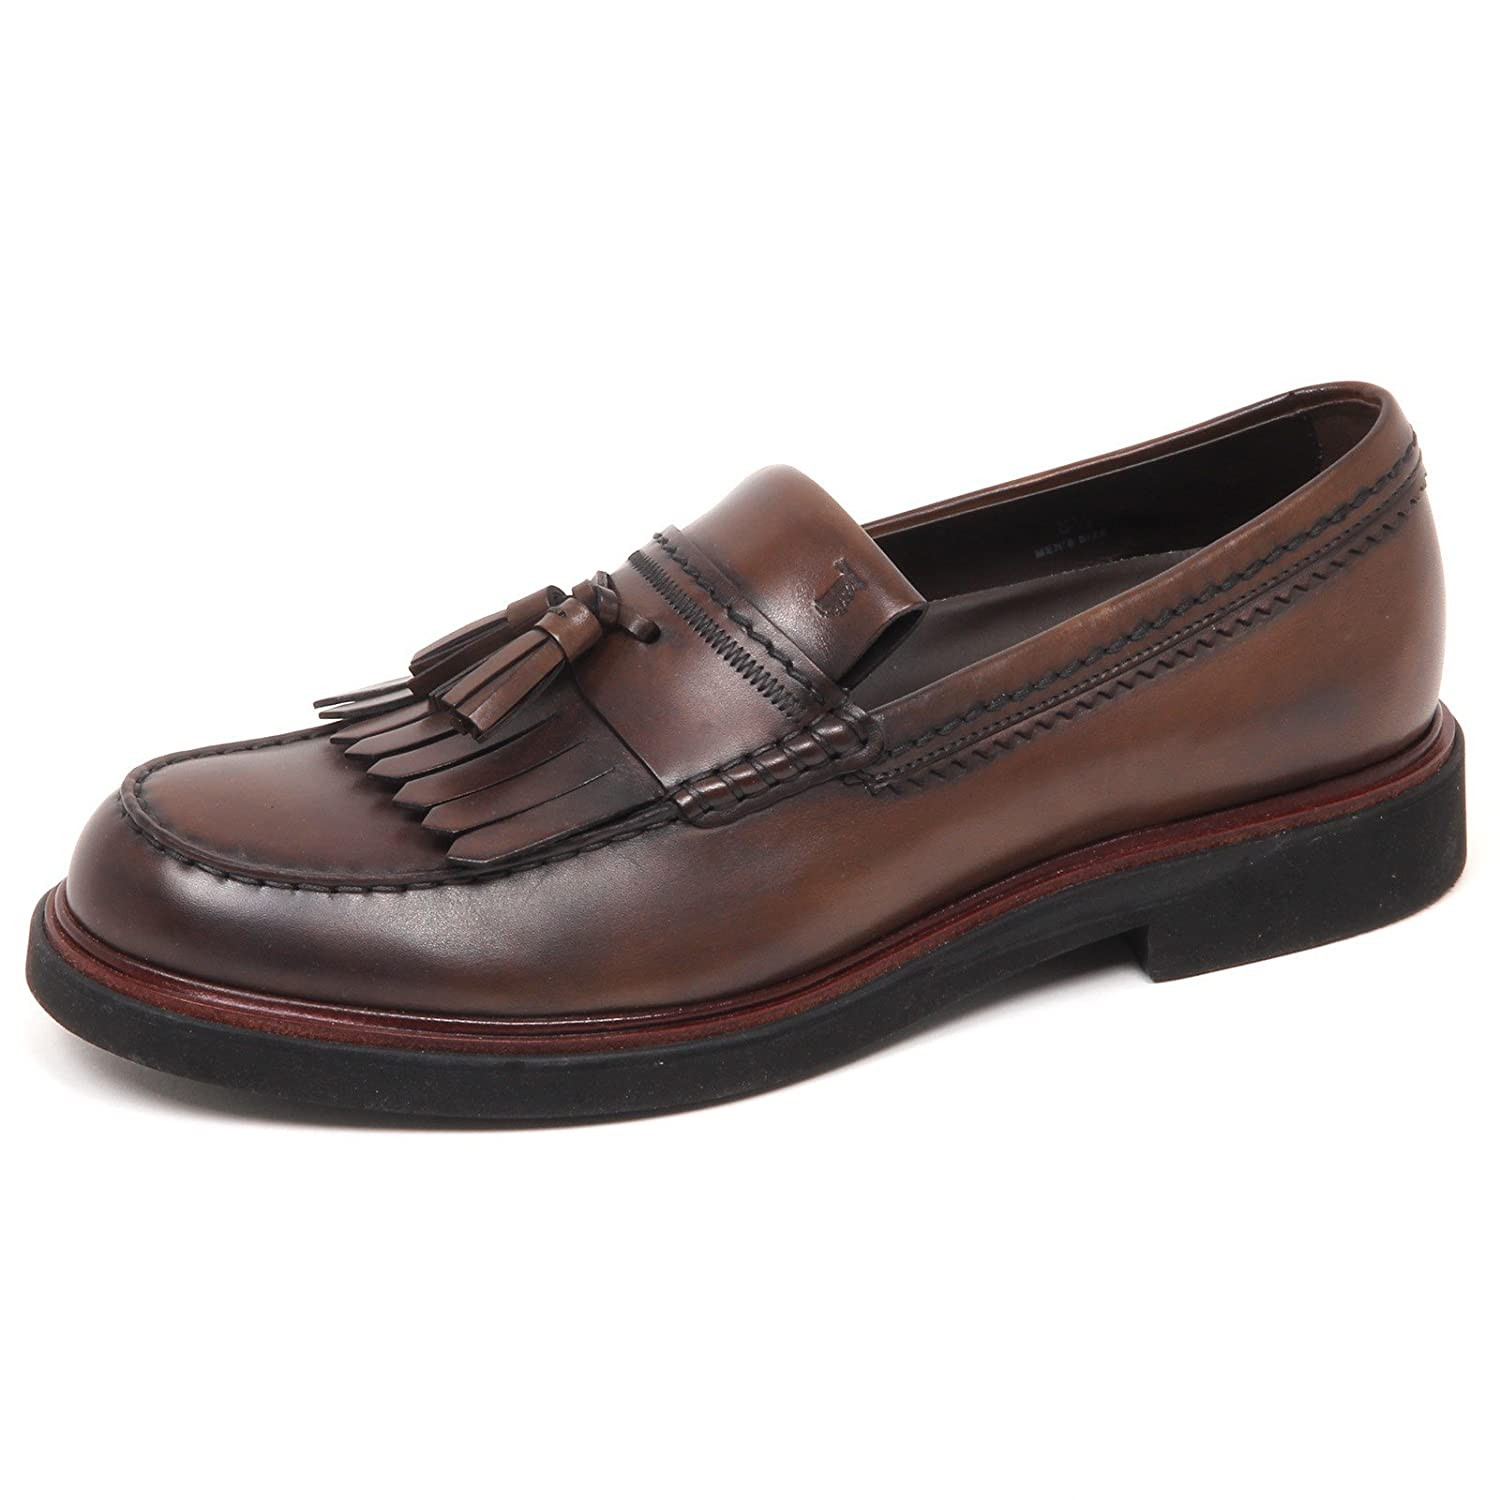 Tod's E7554 Loafer Mocassino  Herren Braun Schuhe Vintage Effect Loafer E7554 Schuhe Man Marrone a6bb68